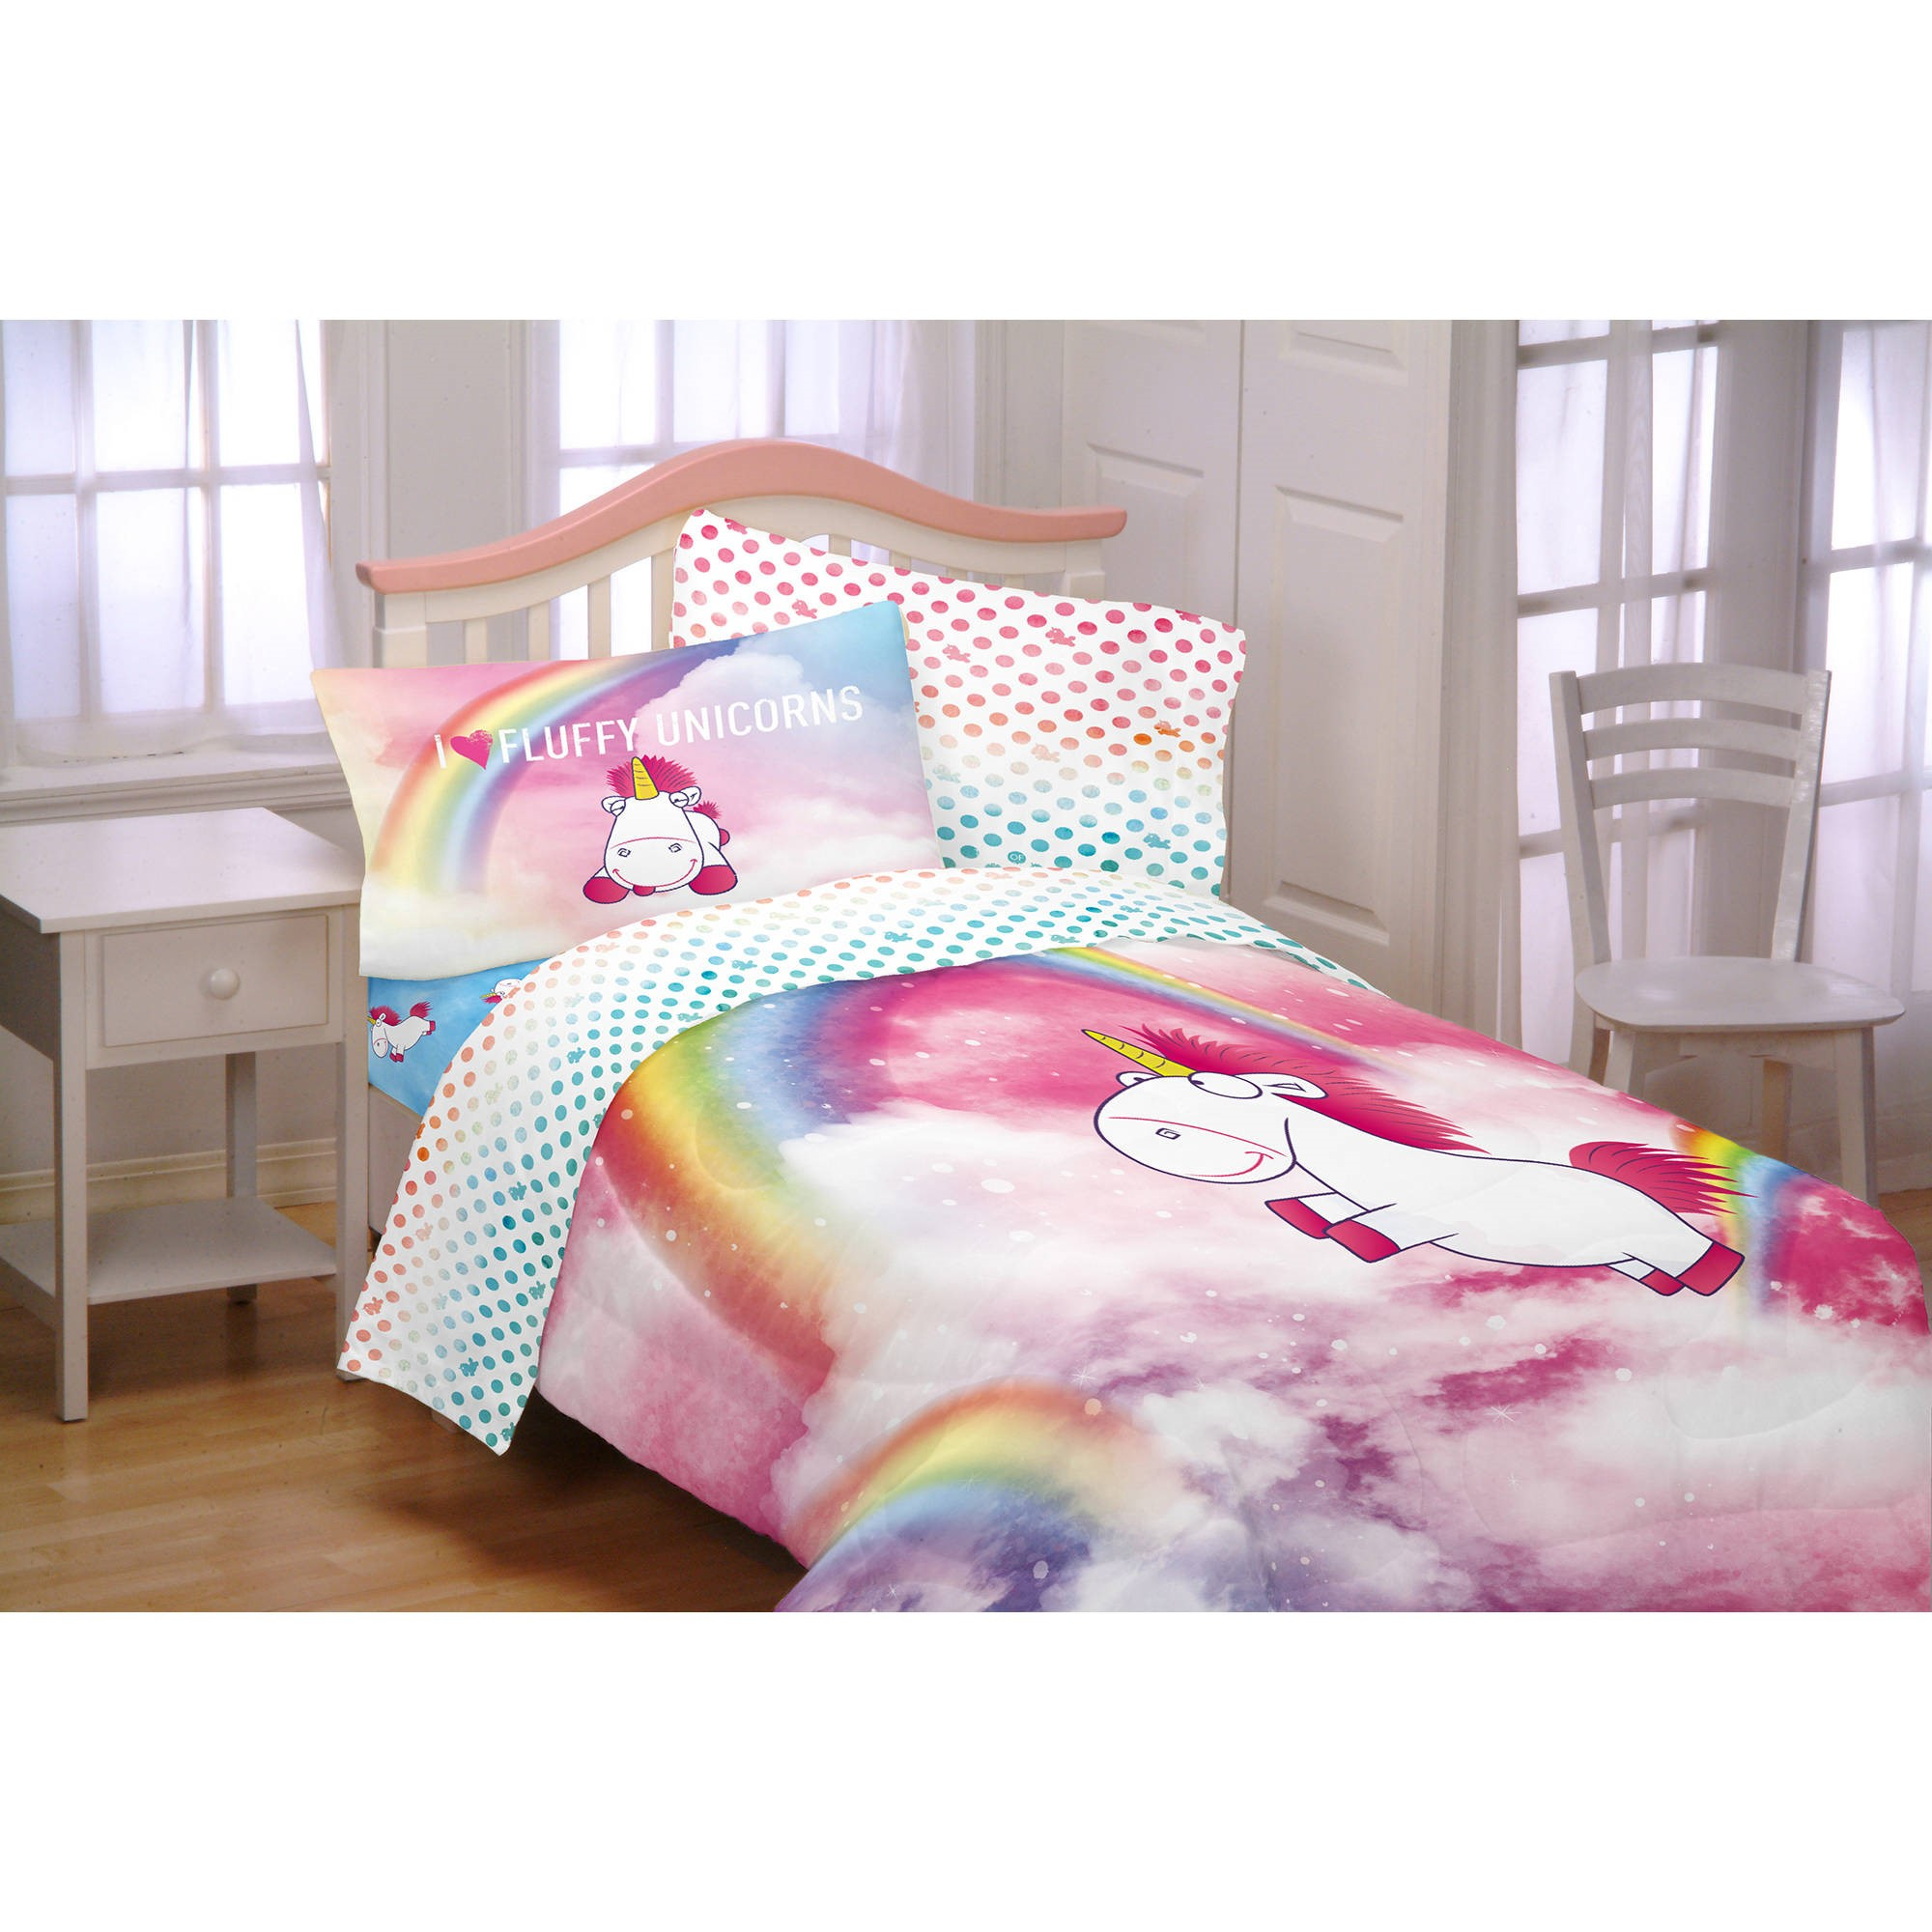 Despicable Me Minons Fluffy The Unicorn Fluffy Rainbows Kids Bedding Twin/Full Reversible Polyester Comforter